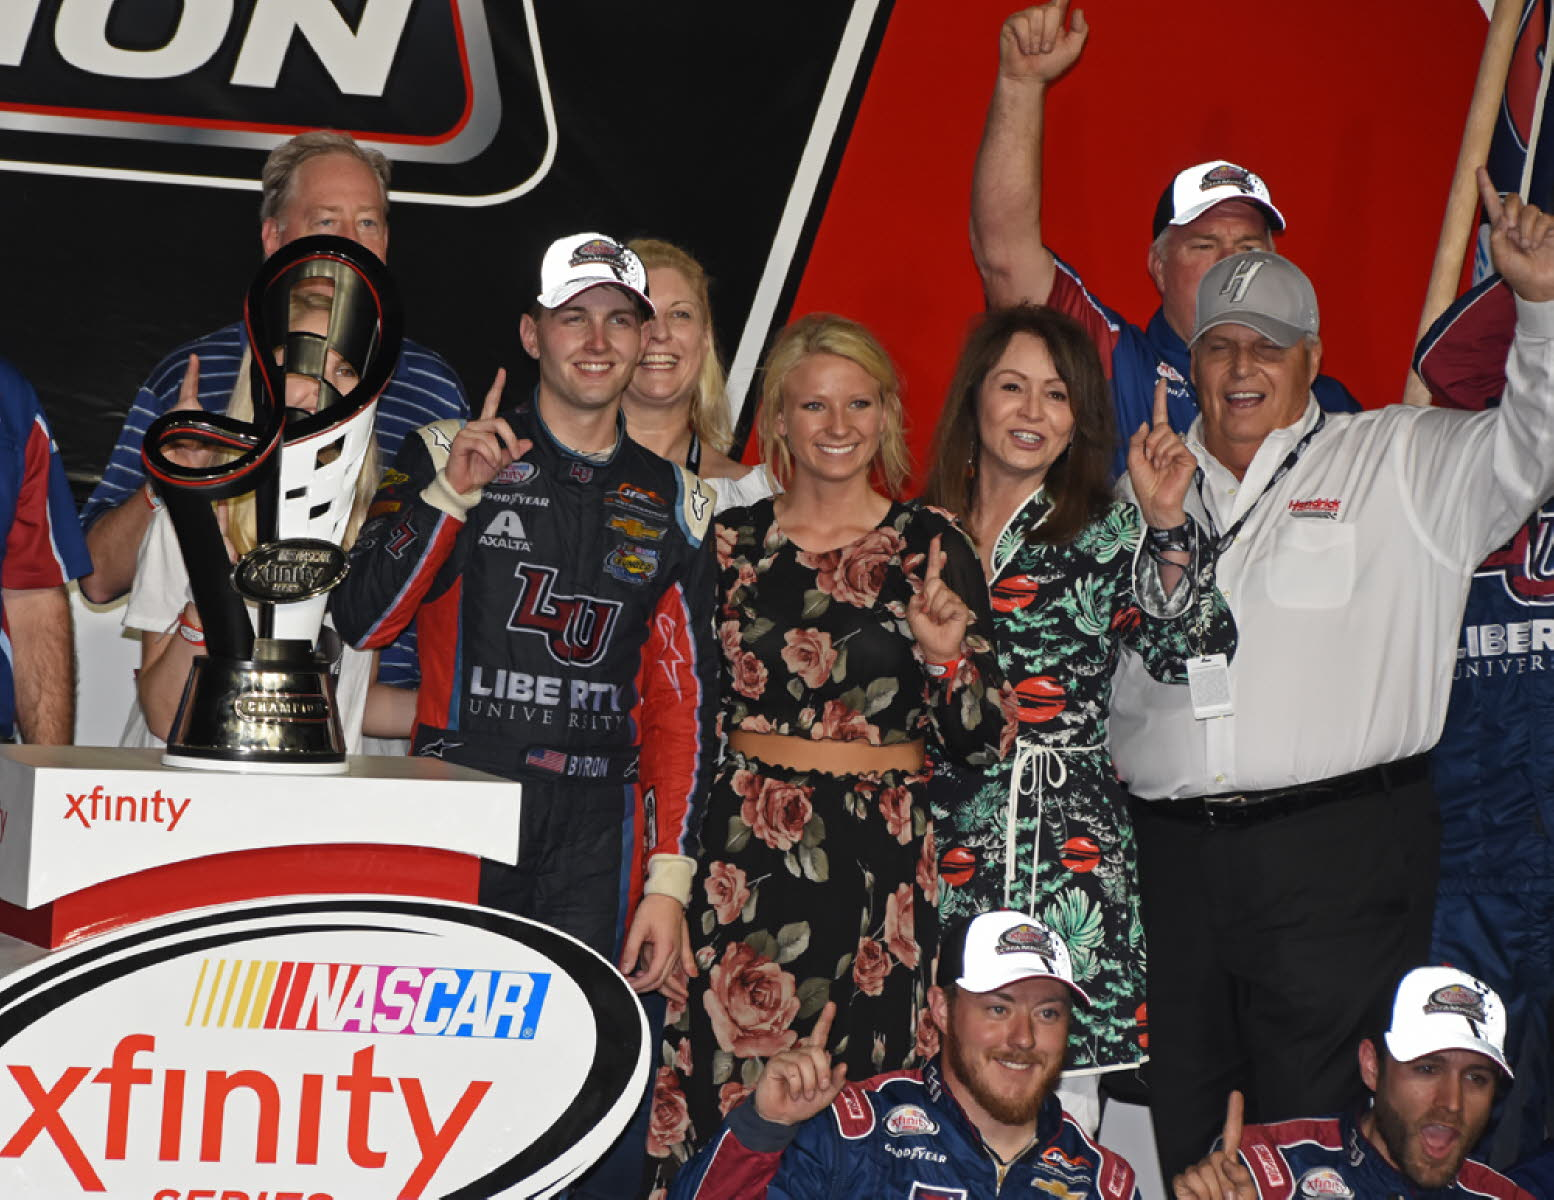 Xfinity champion William Byron and team co-owner Rick Hendrick. [Joe Jennings Photo]